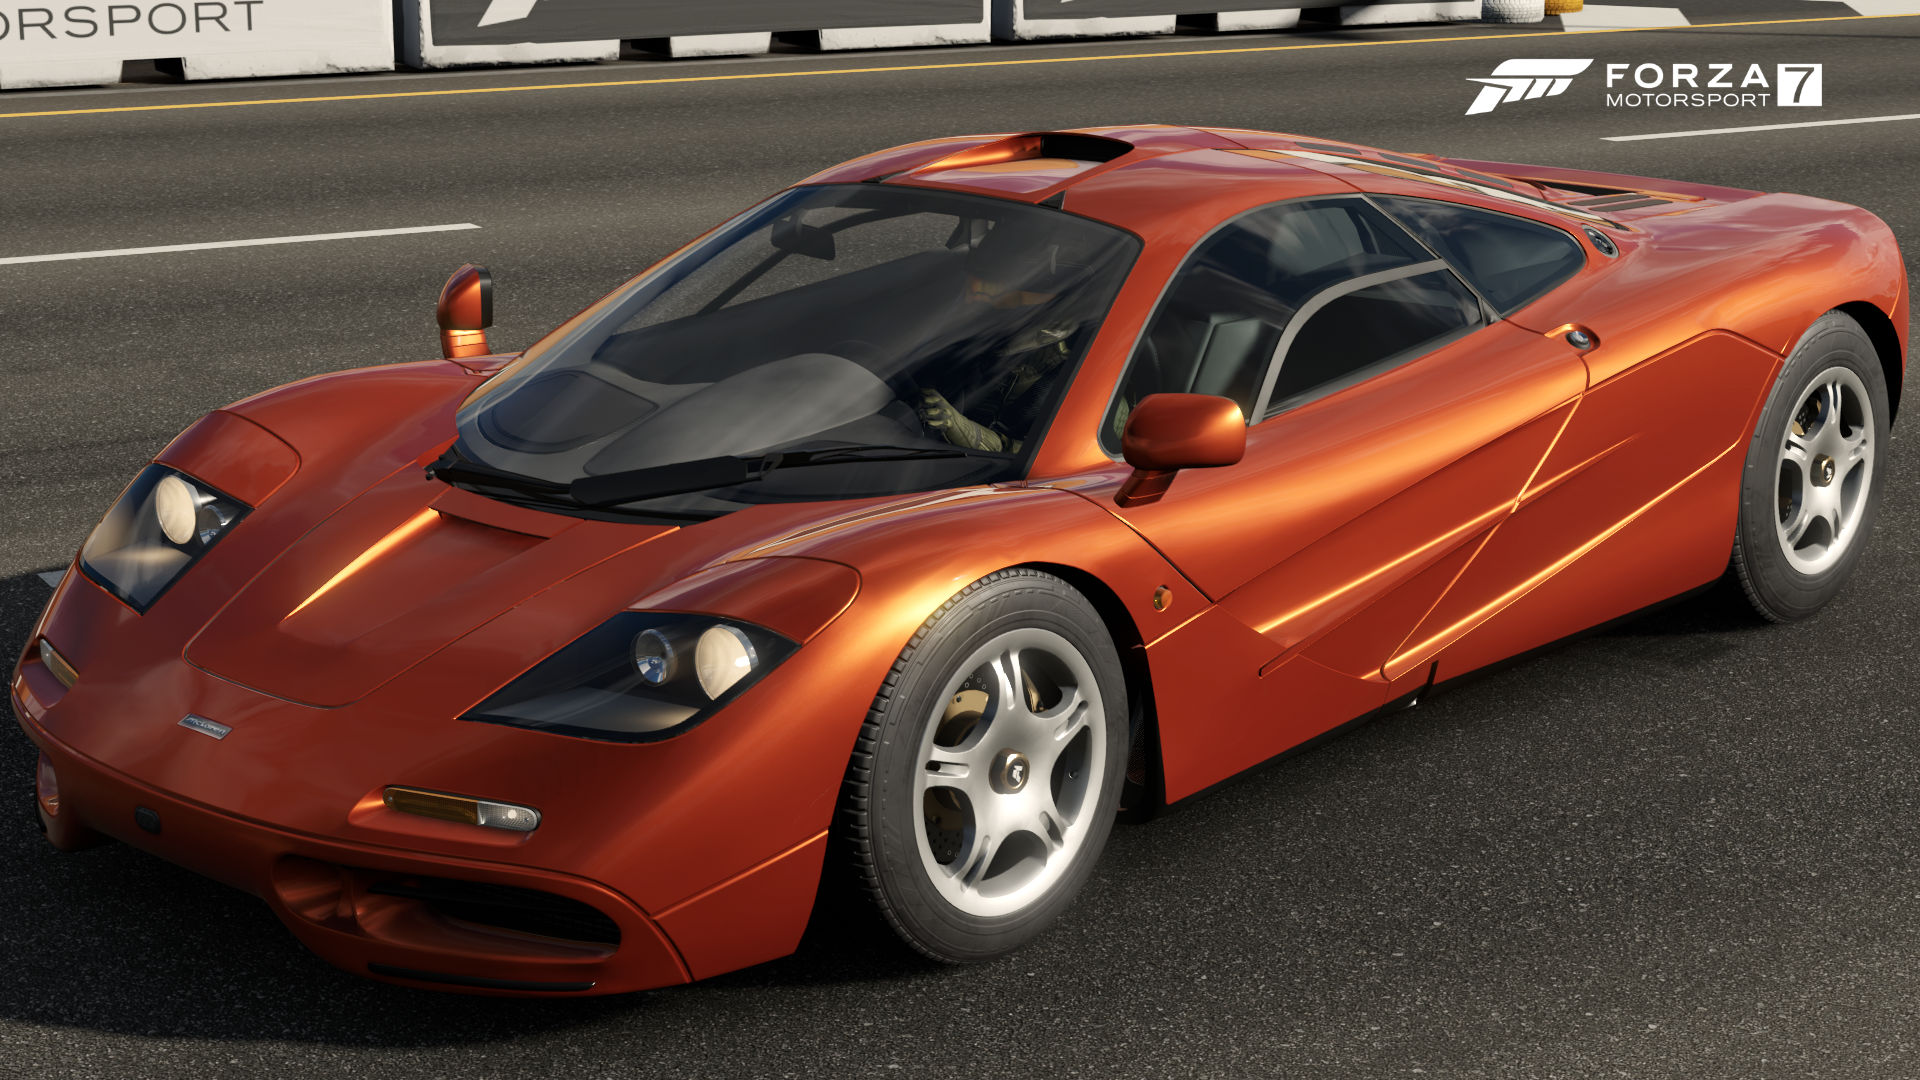 McLaren F1 (1993) | Forza Motorsport Wiki | FANDOM powered by Wikia